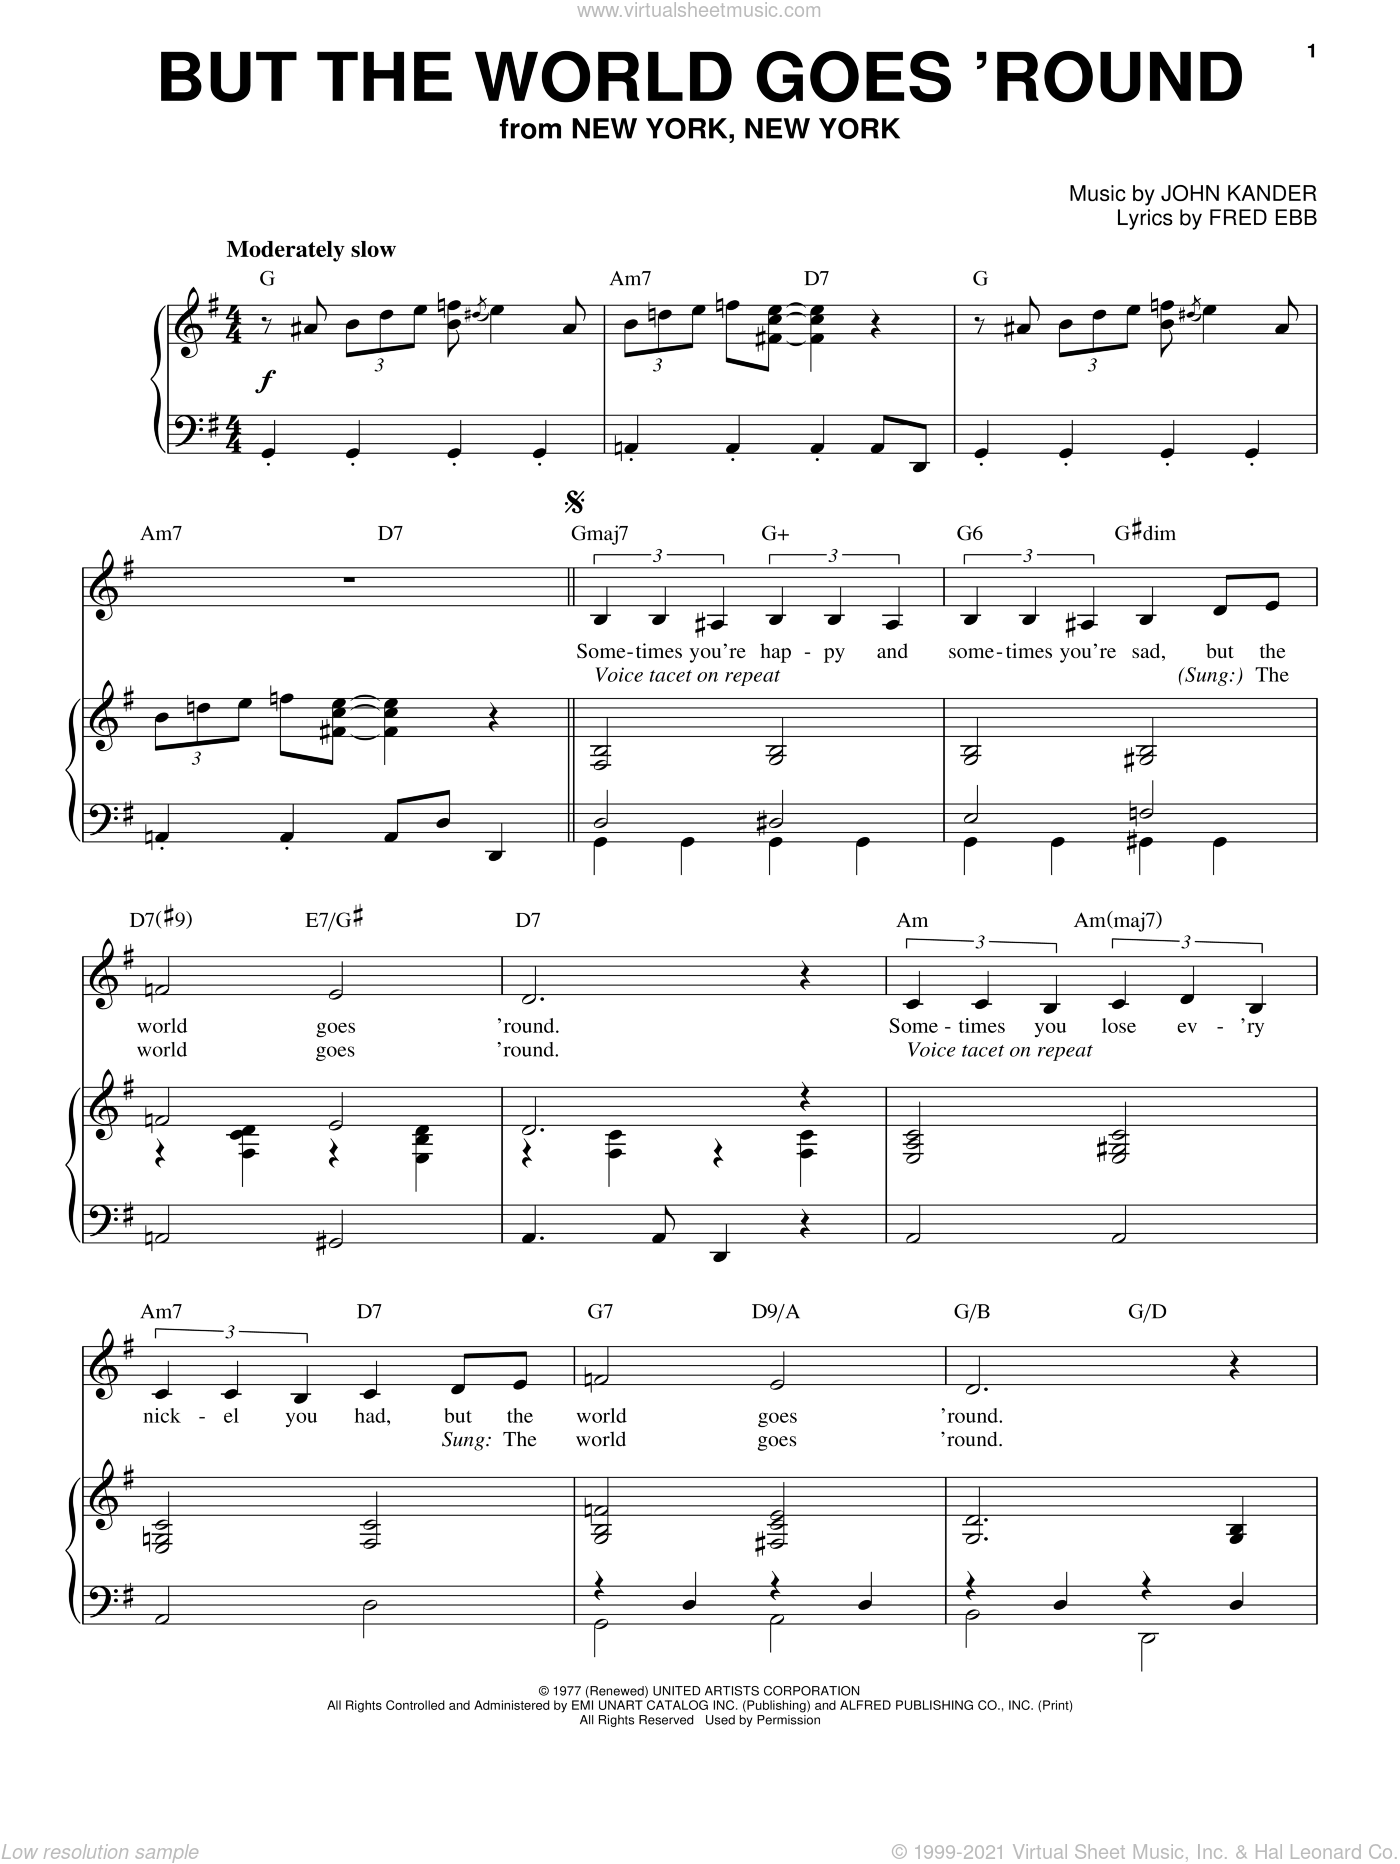 But The World Goes 'Round sheet music for voice and piano by John Kander